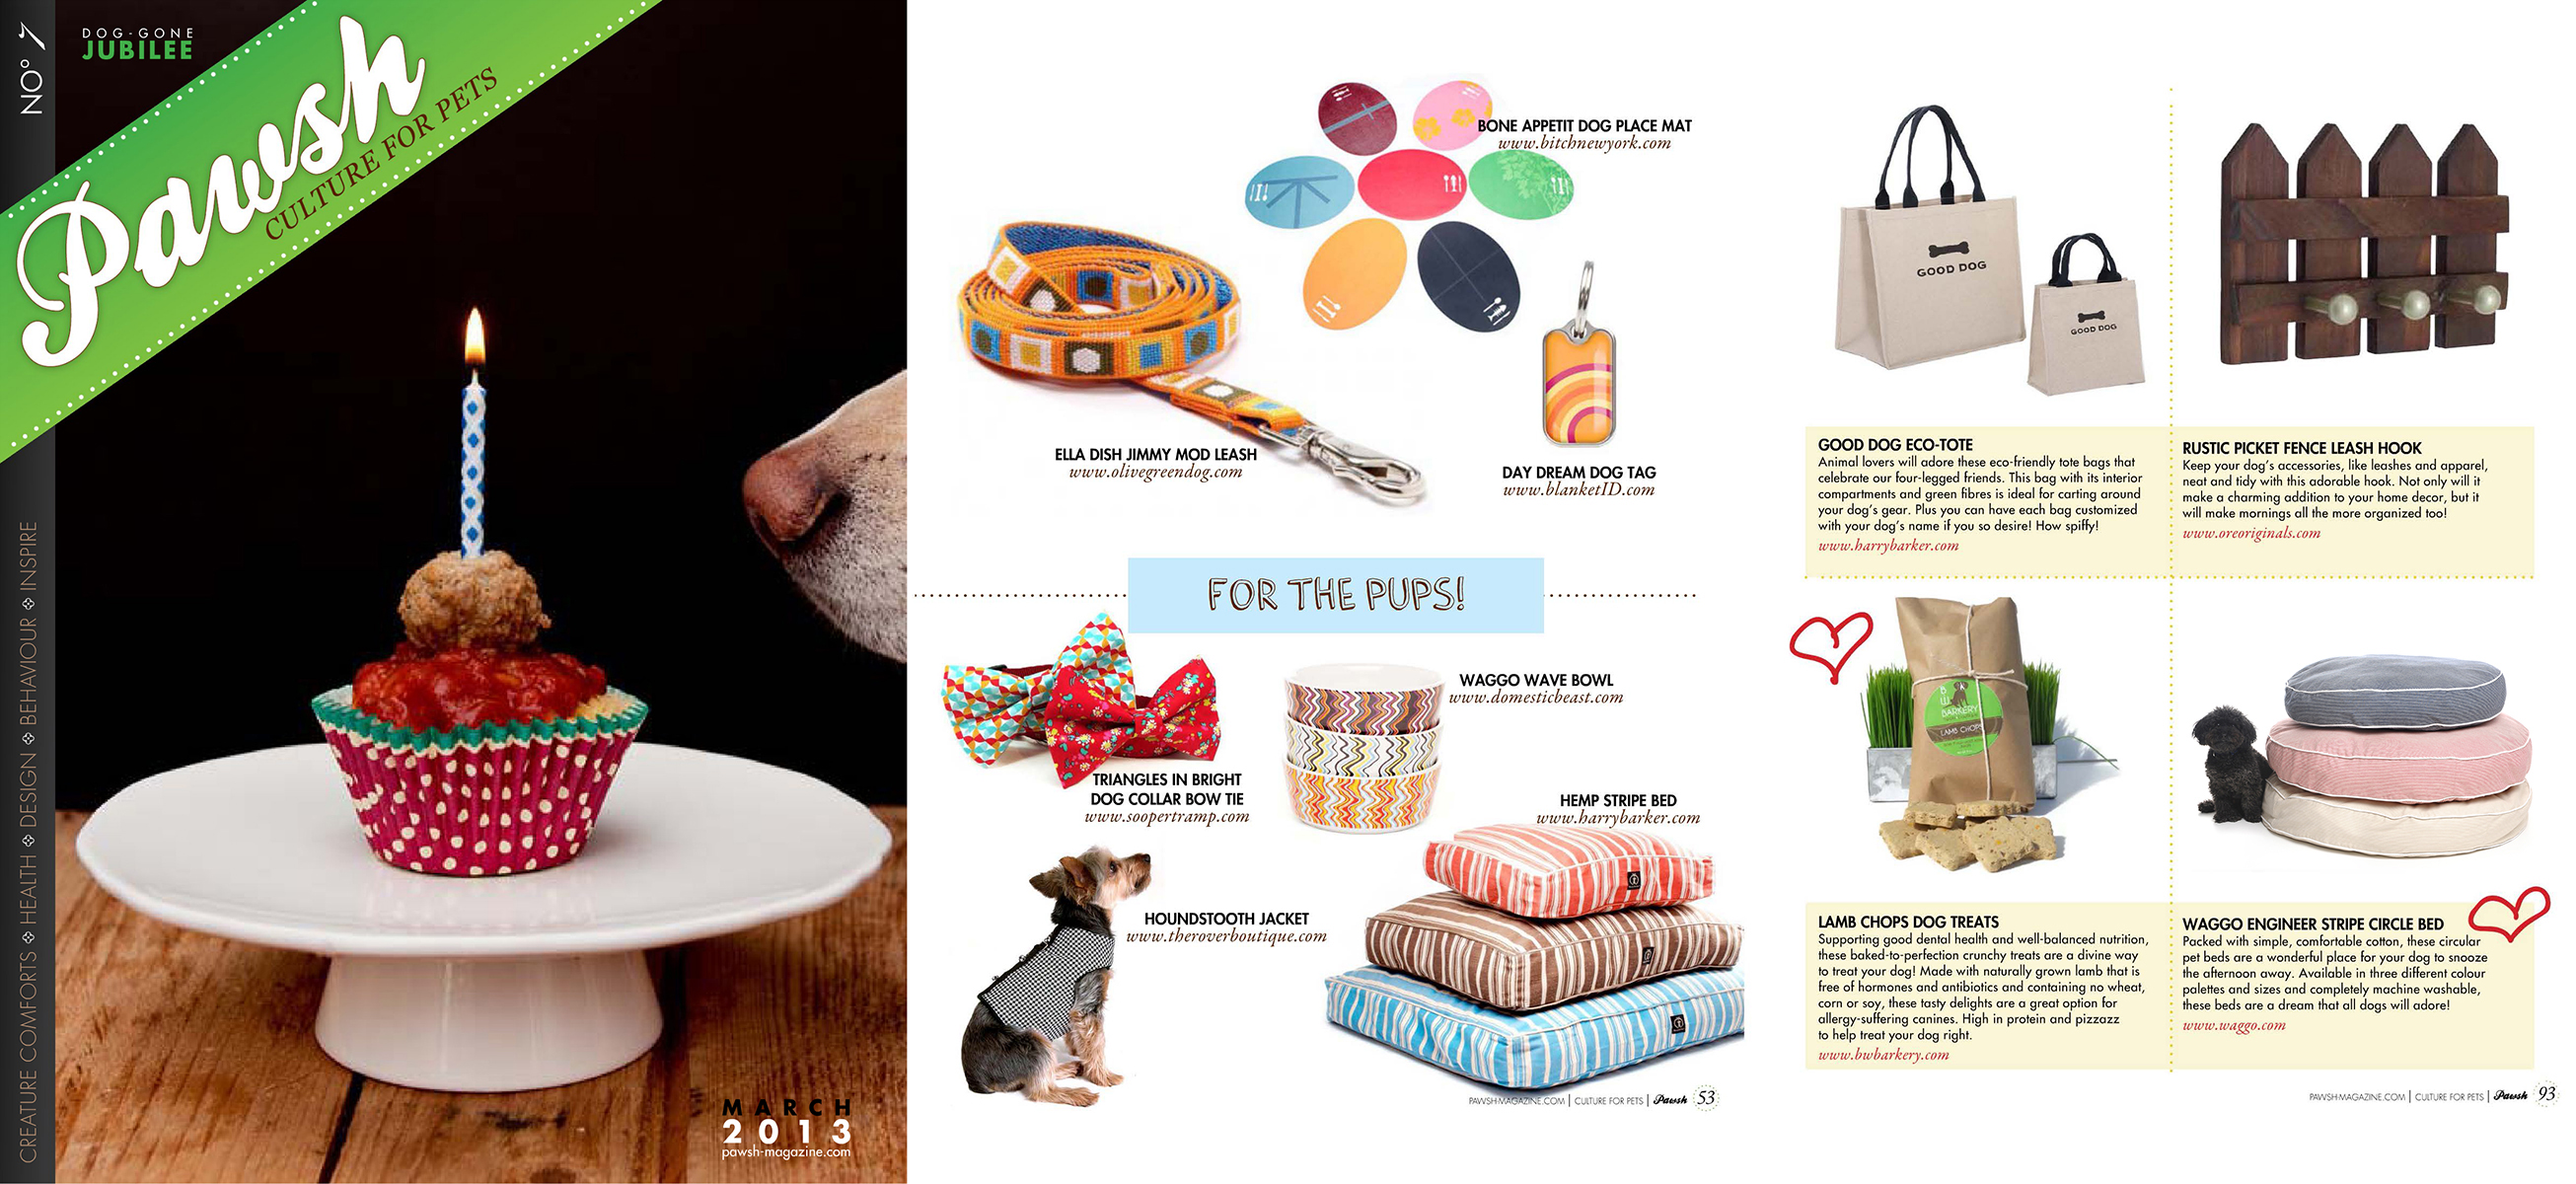 Pawsh Magazine March 2013 Waggo Engineer Striped Dog Beds